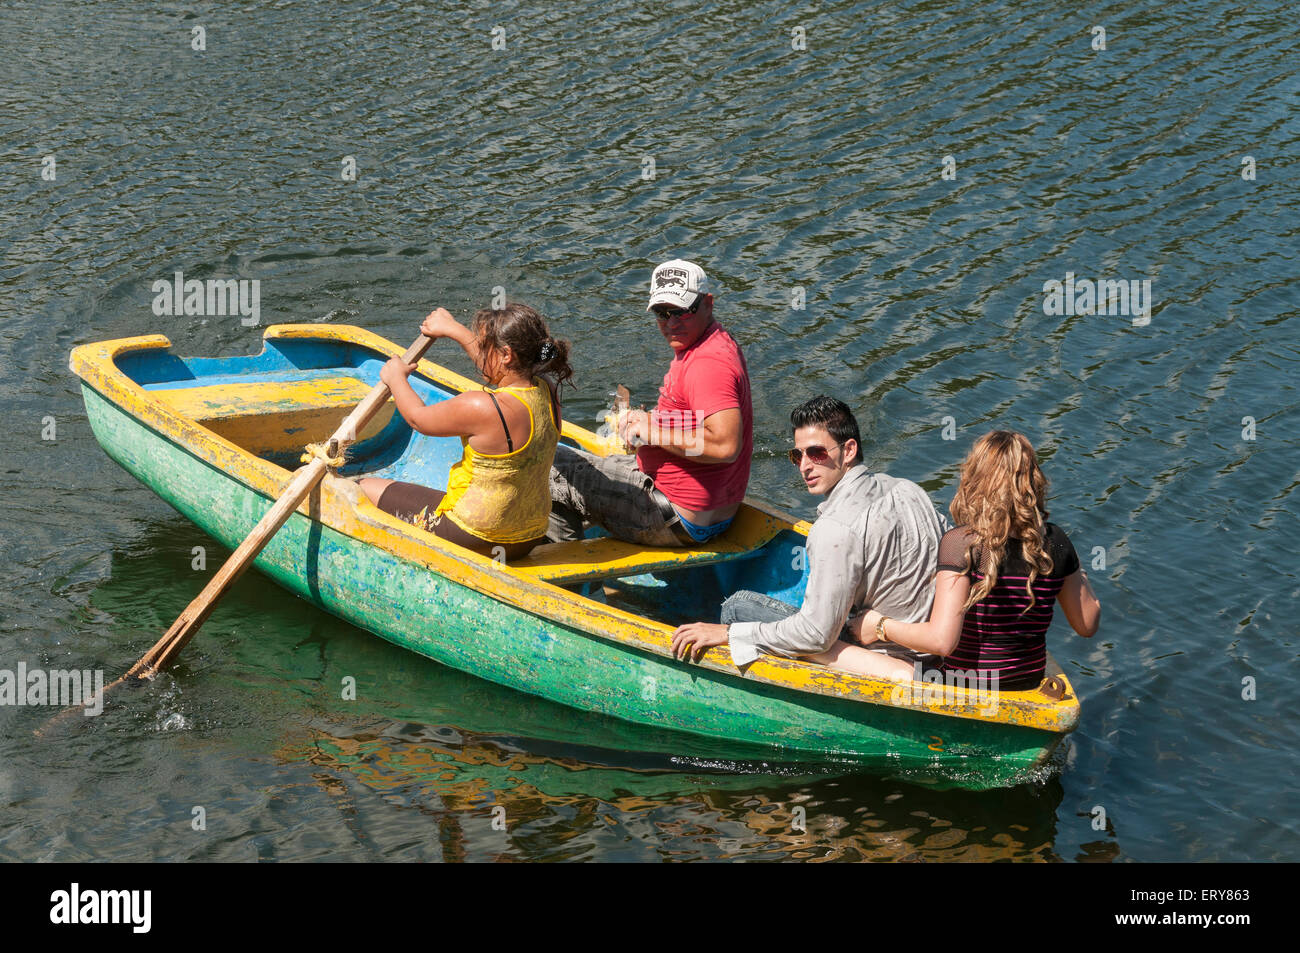 Elk224-2032 Cuba, Las Terrazas, Two couples boating on lake - Stock Image